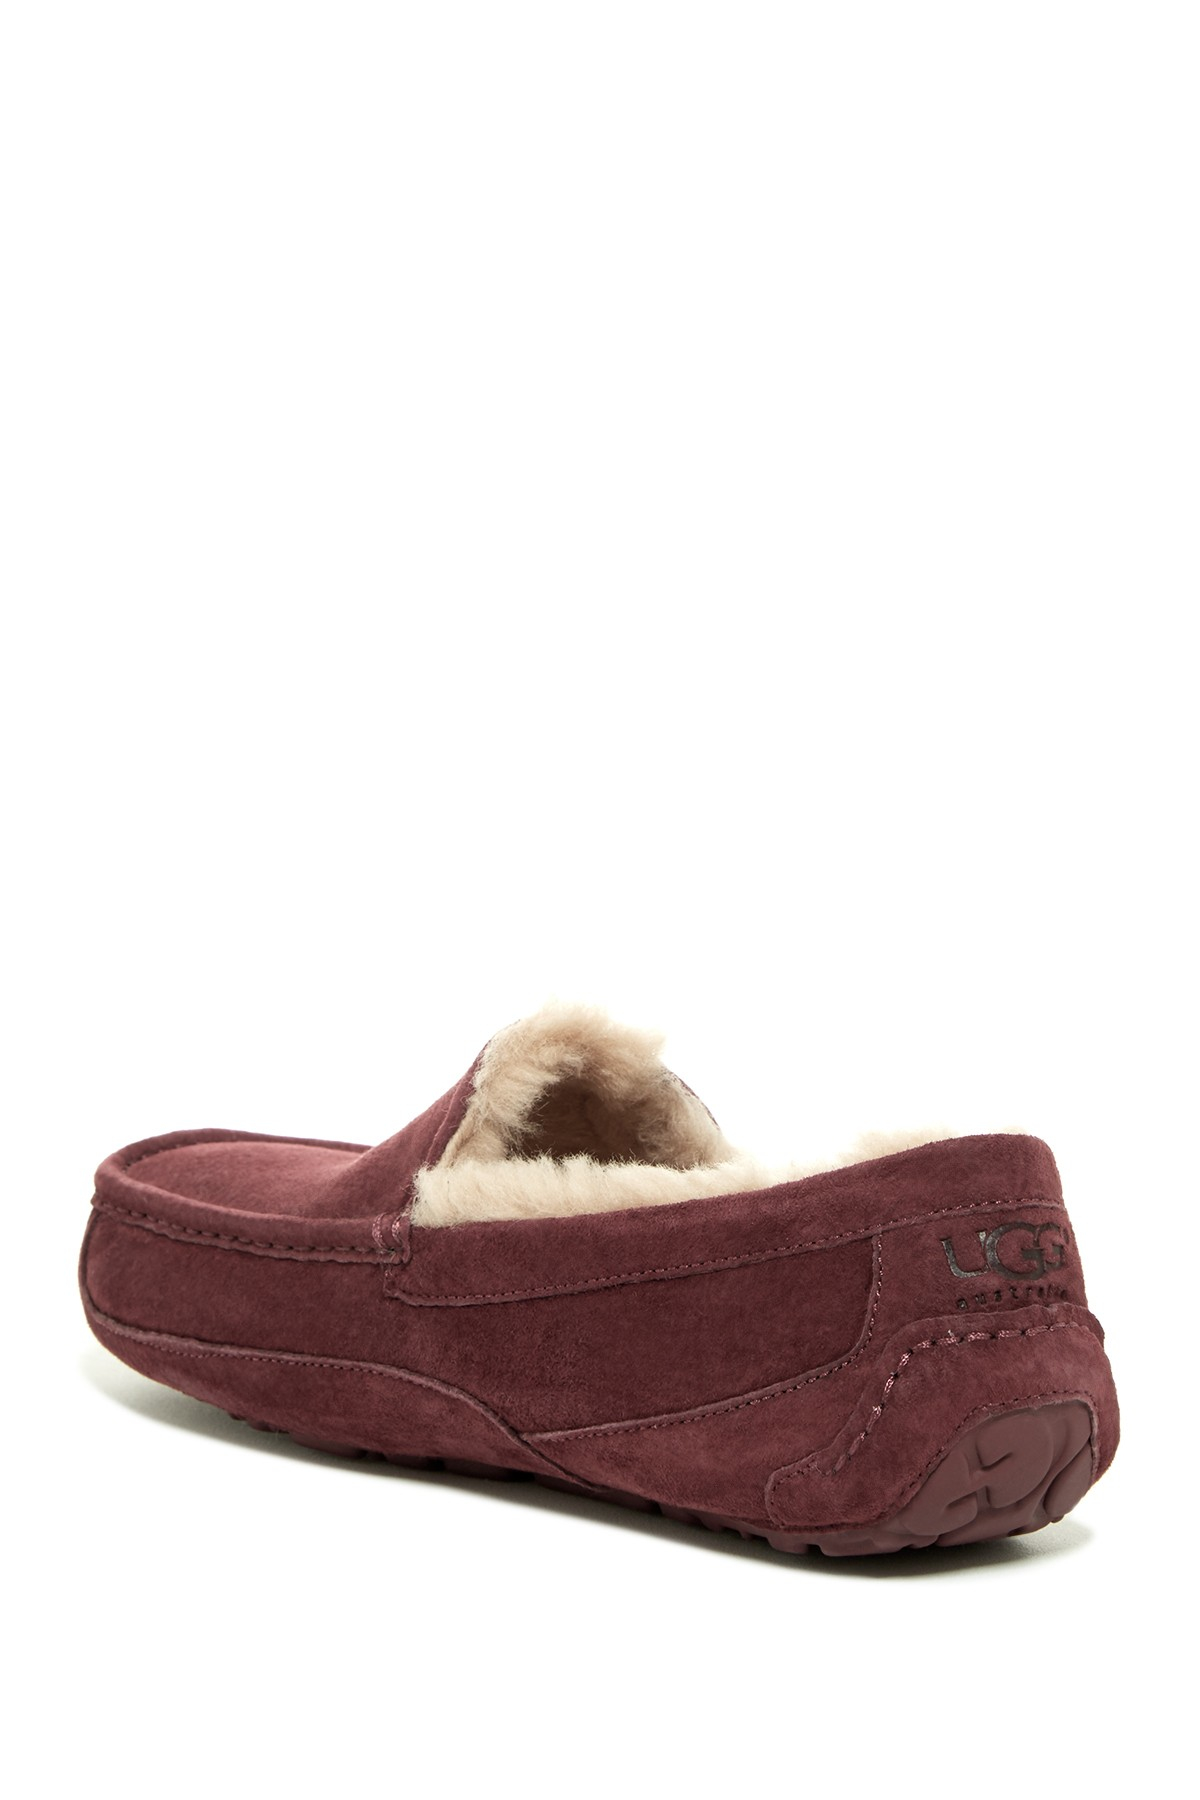 nordstrom ugg ascot leather